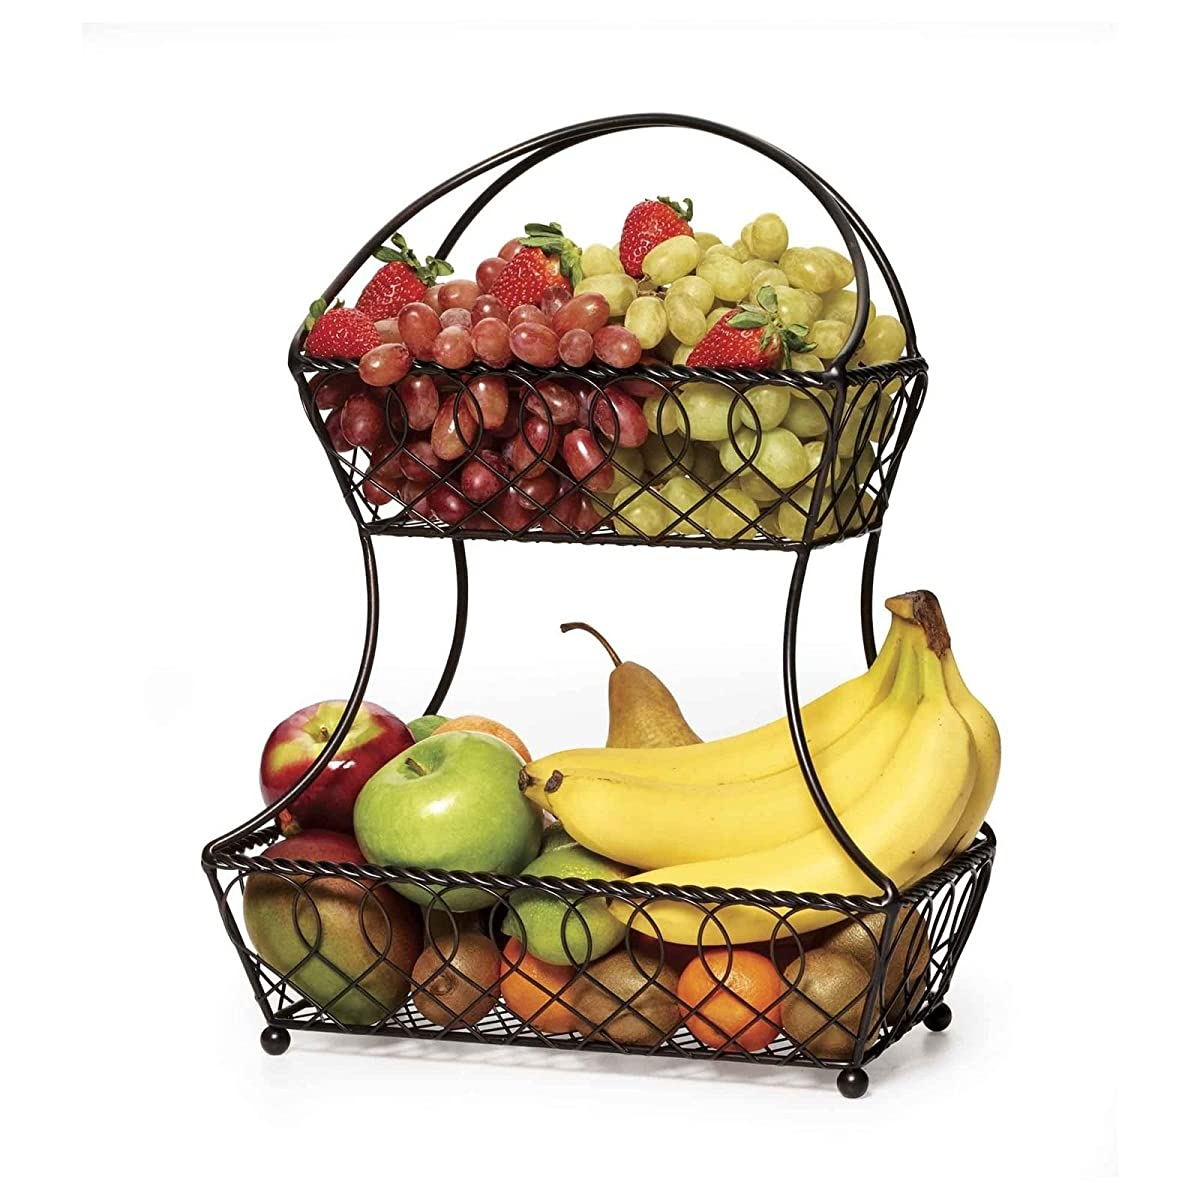 Mikasa Gourmet Basics 2-Tier Flatback Basket Display Fruit Kitchen Antique Wire